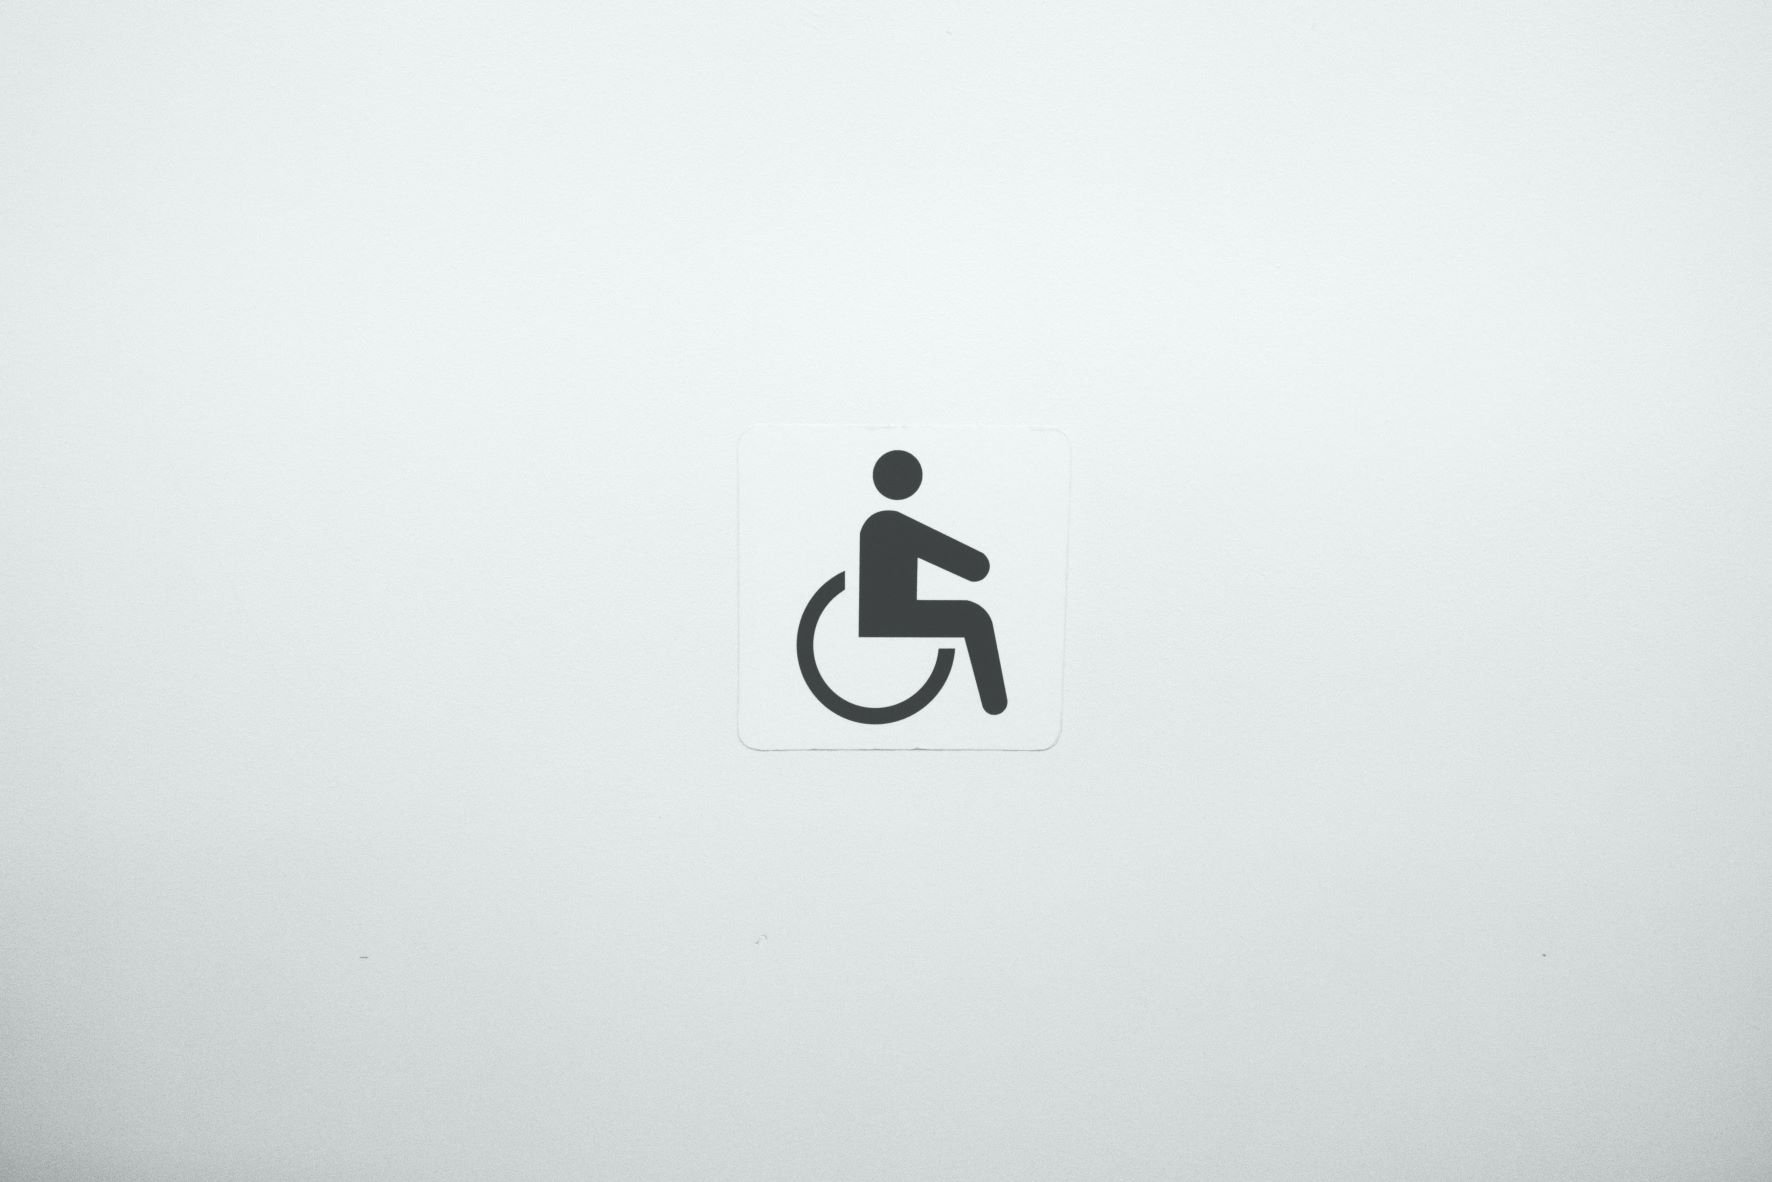 A black symbol of a person in a wheelchair over a white background.